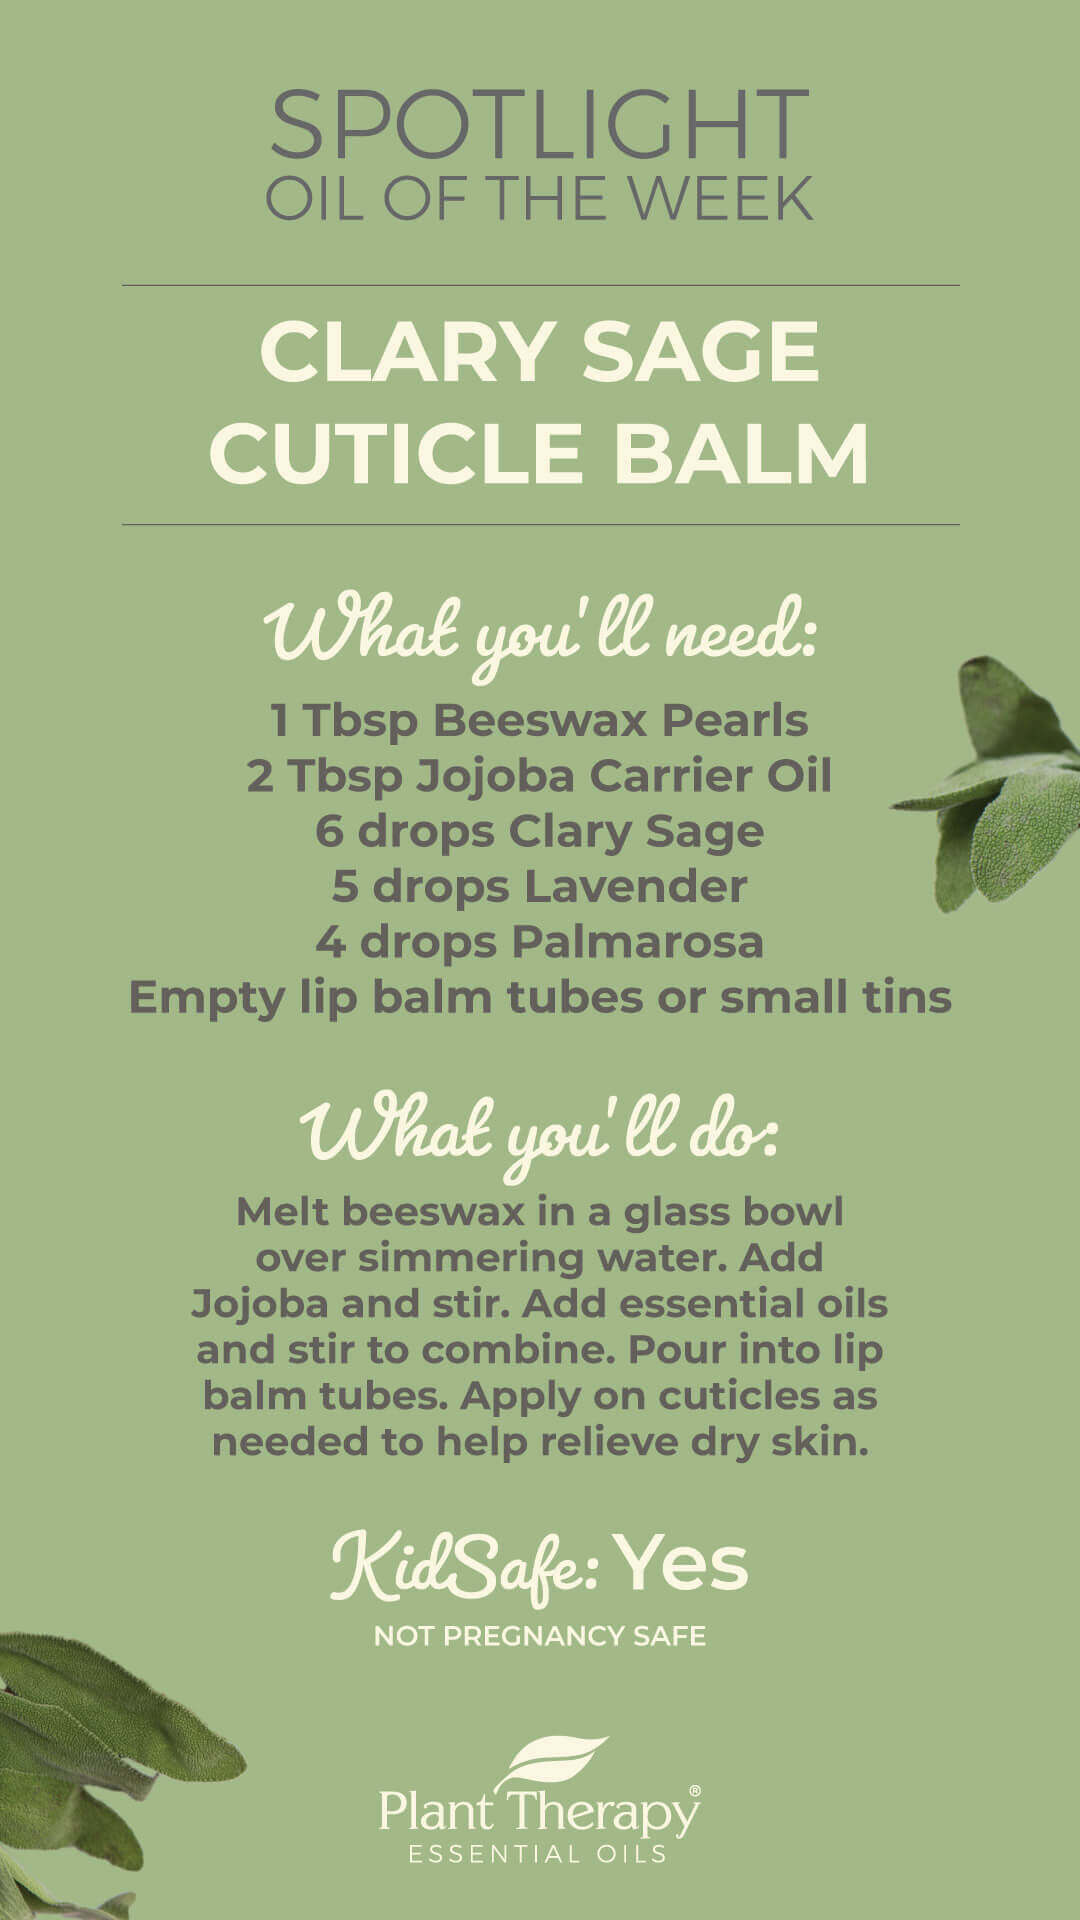 Essentials Video: Clary Sage Cuticle Balm DIY